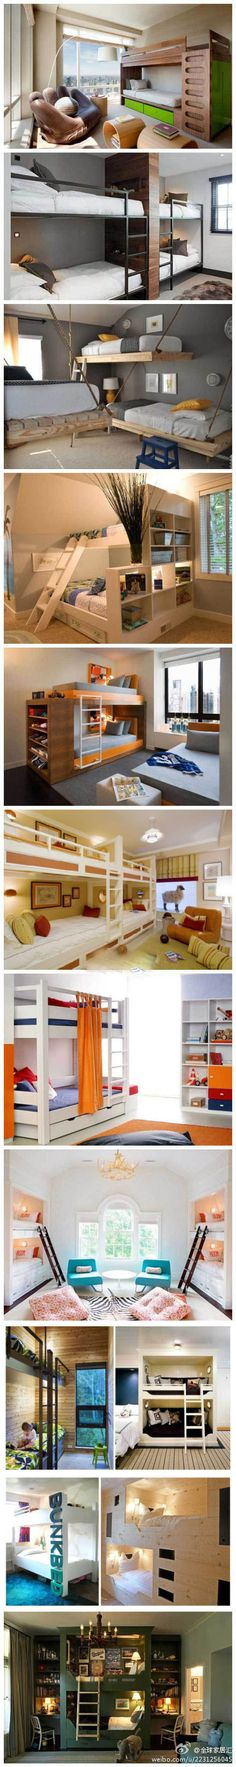 bunkbeds - just never stopped being cool